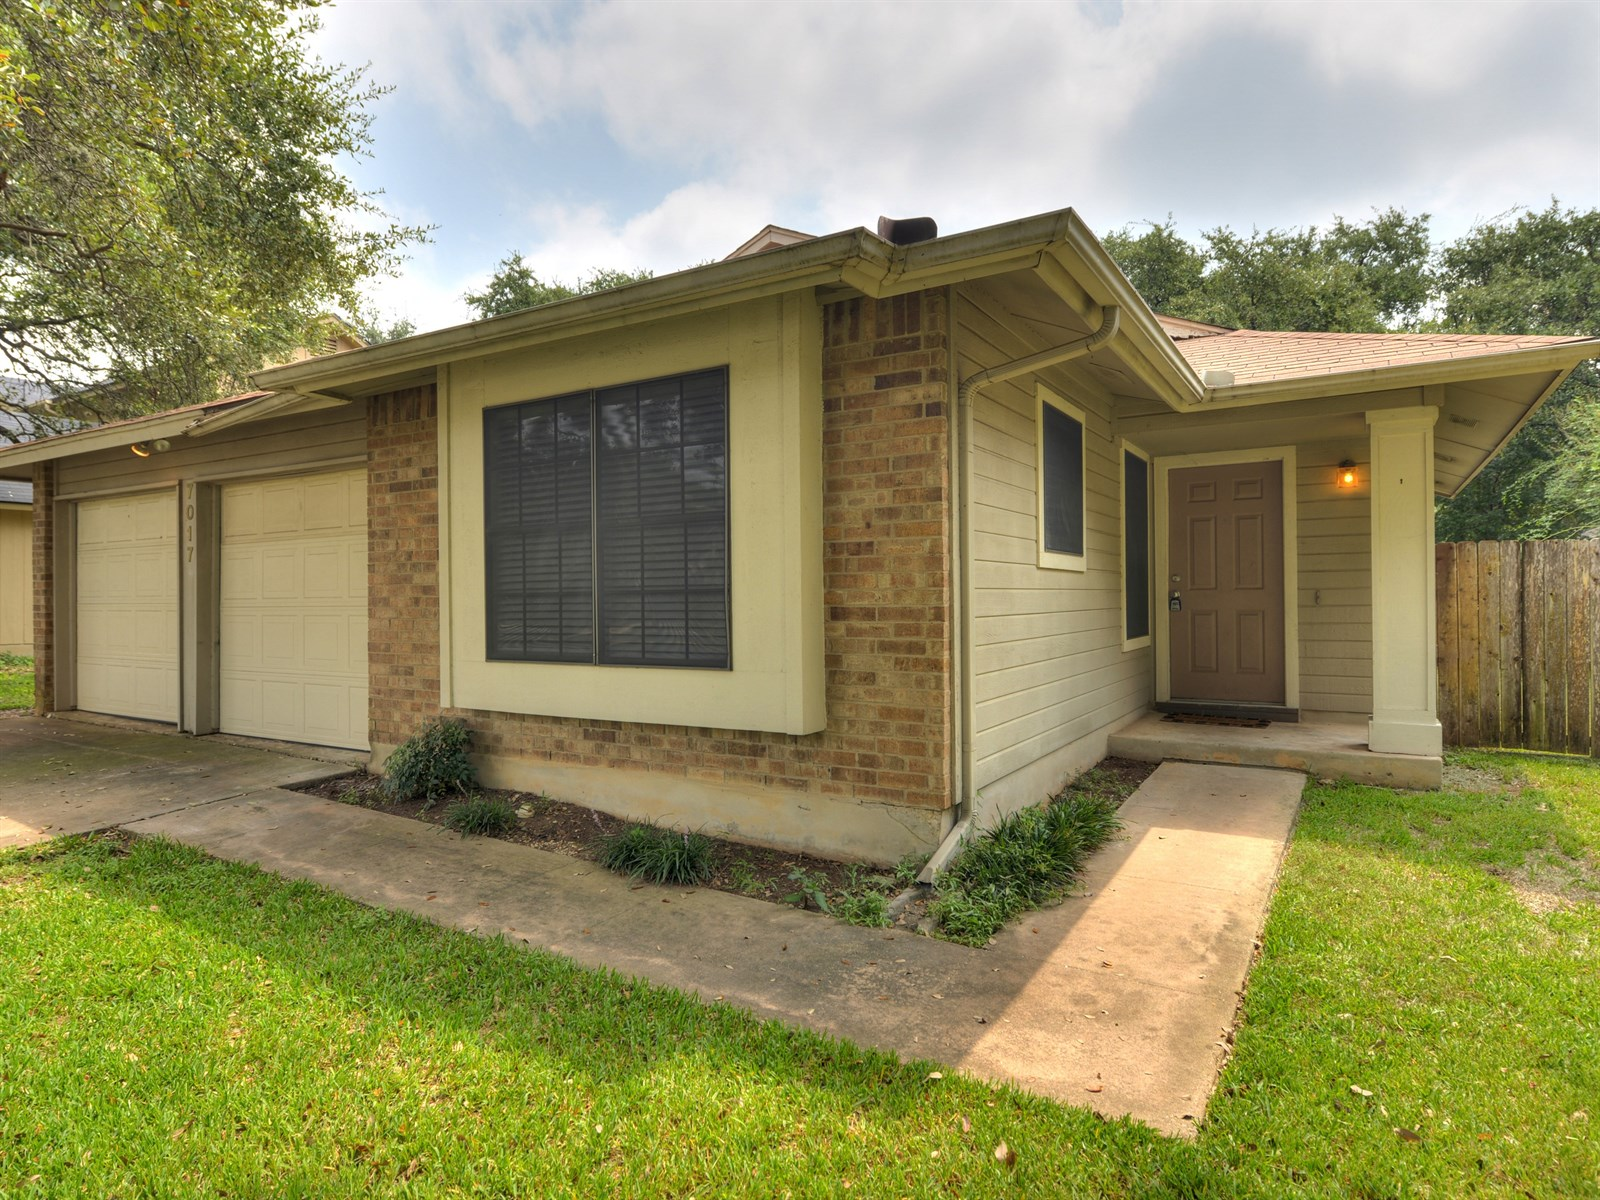 HOME FOR LEASE: 7017 Dallas Dr. 78729